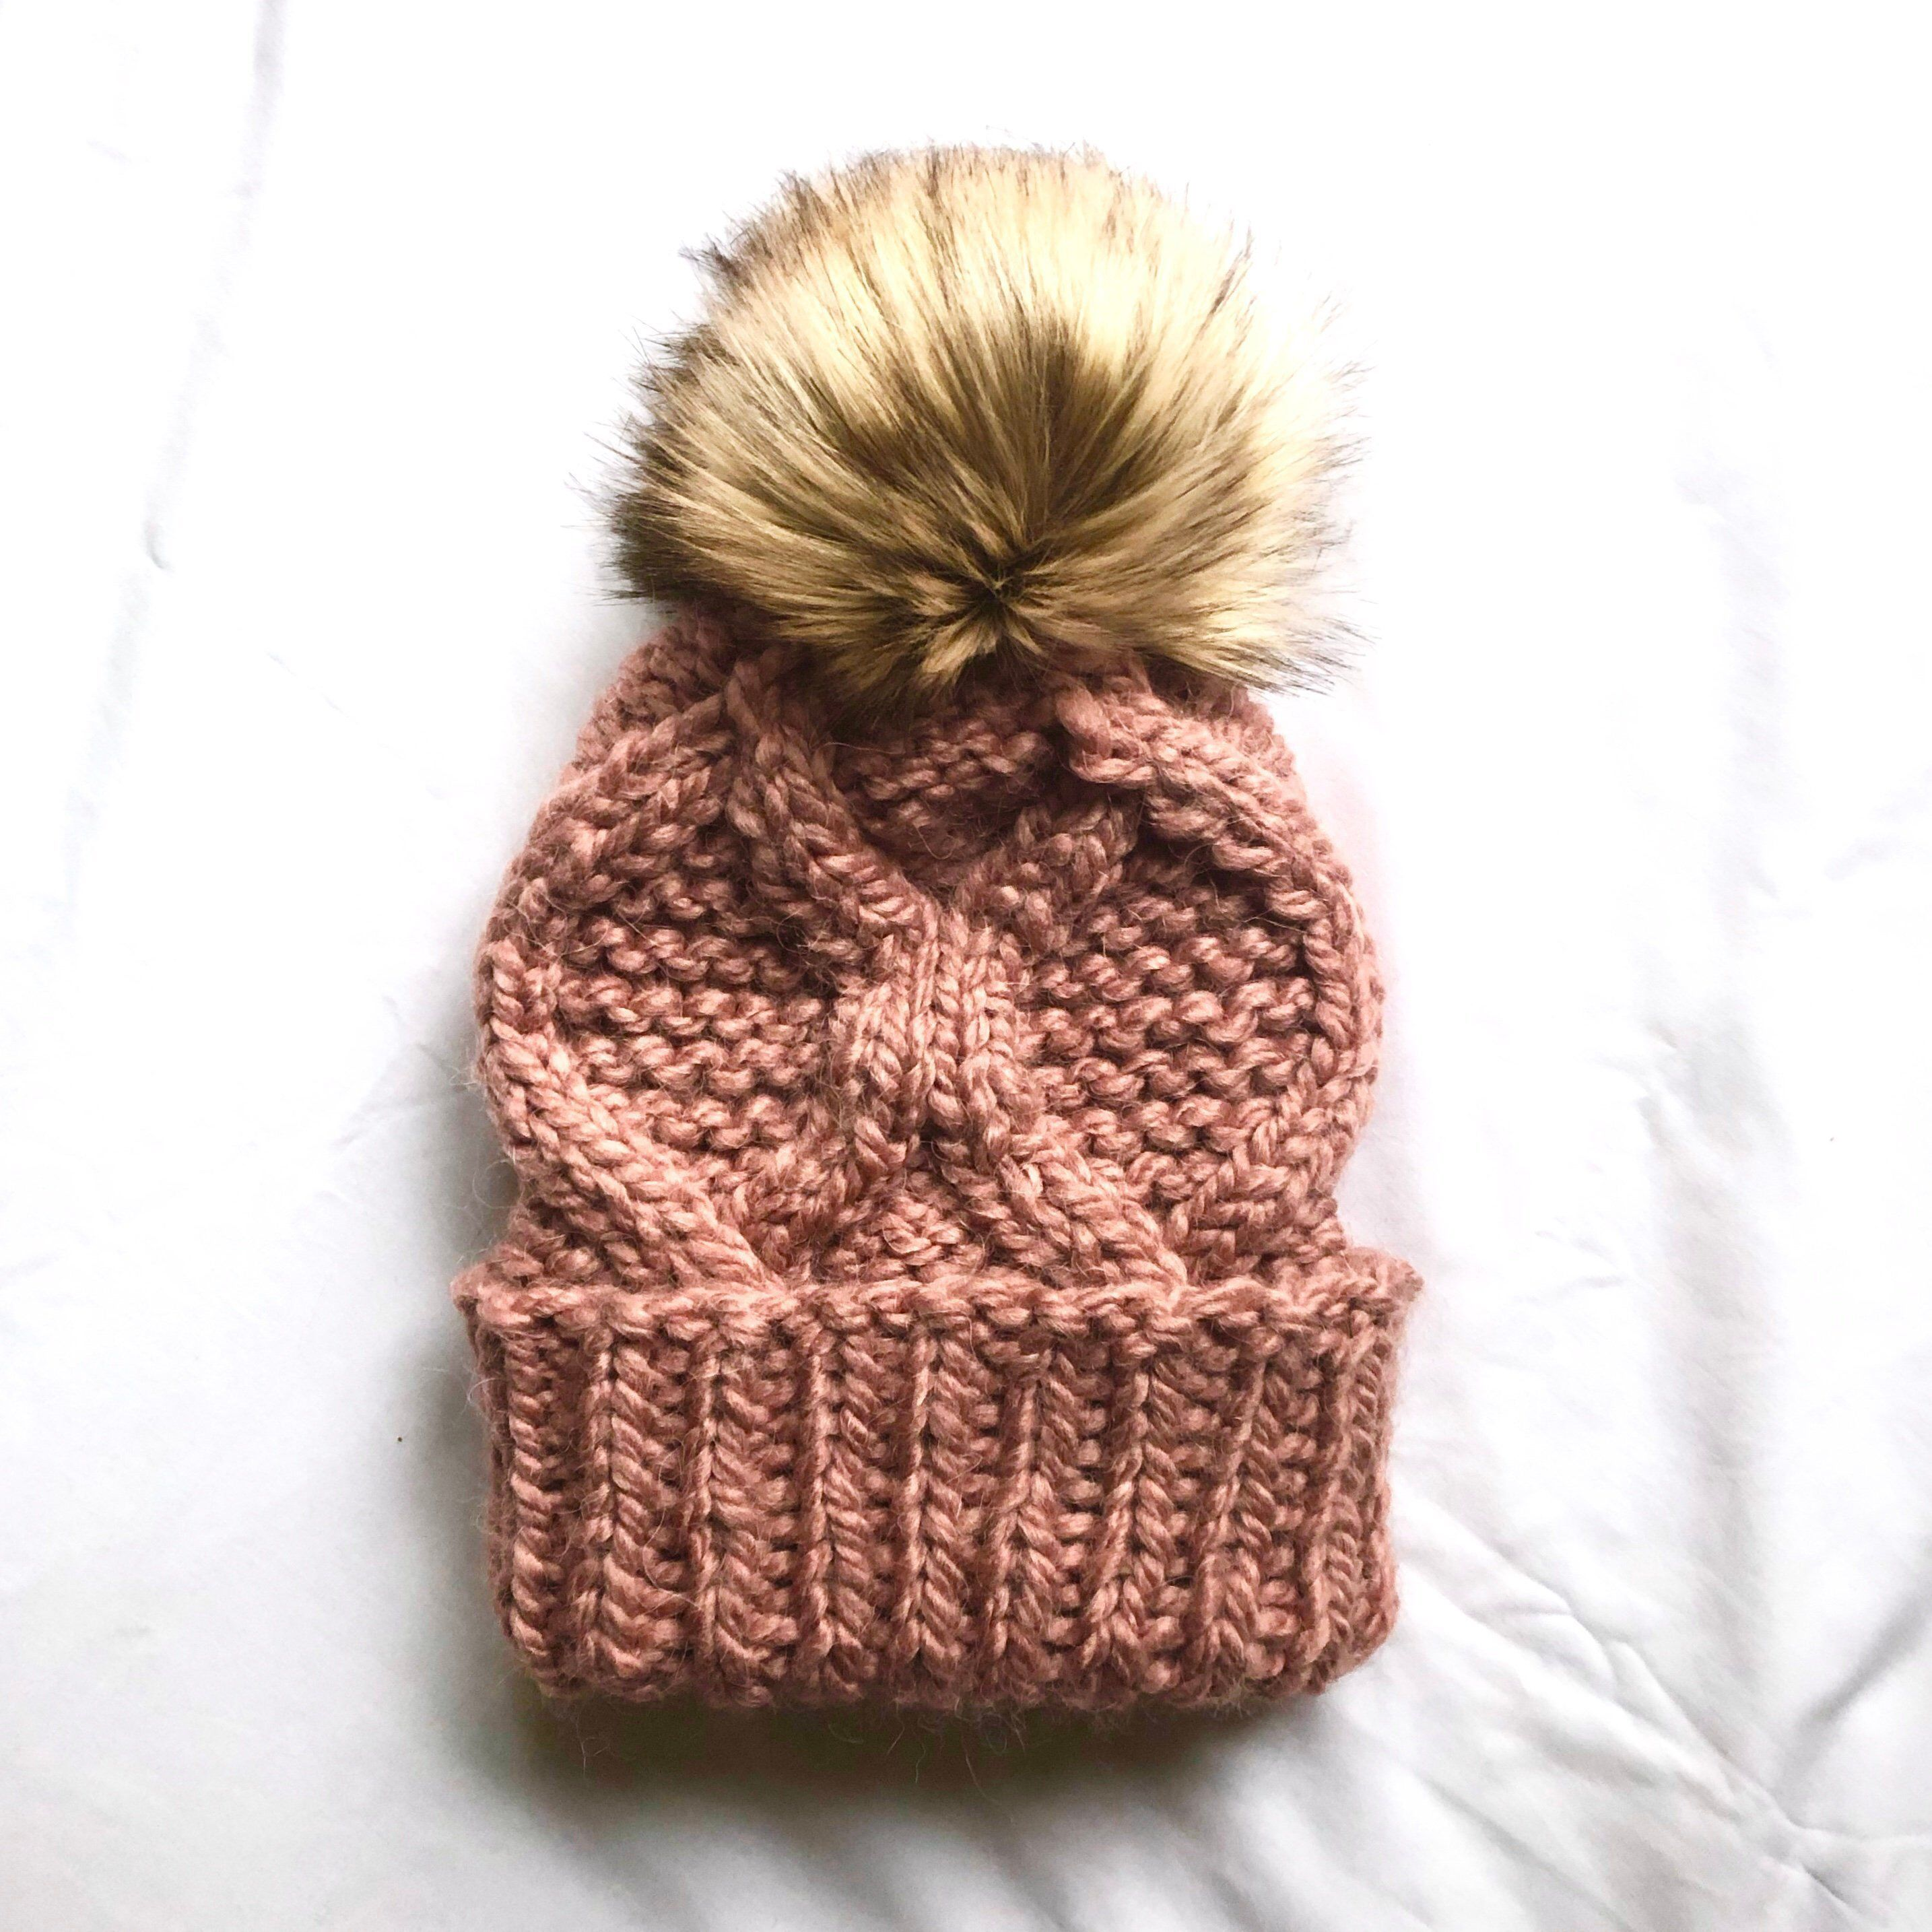 e216a70b5f3 Excited to share this item from my  etsy shop  Onni Beanie - Rose Blush    Knit  Cable Beanie    Knit Toque    Wool Hat    Winter Hat    Cable Knit Hat ...